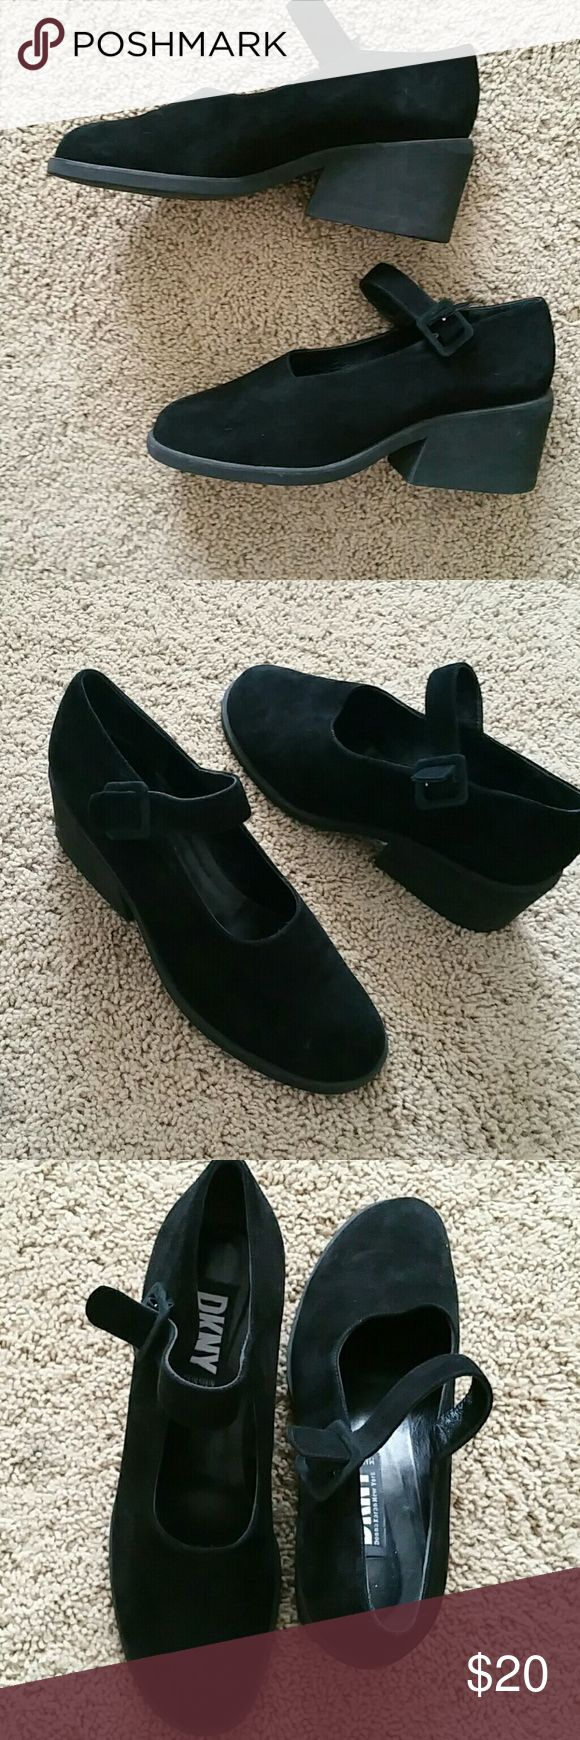 Dkny marry Jane wedges Really cute  Never really worn Made in Spain Vintage Want to sat sz 8 (not sz listed ) Not uo Urban Outfitters Shoes